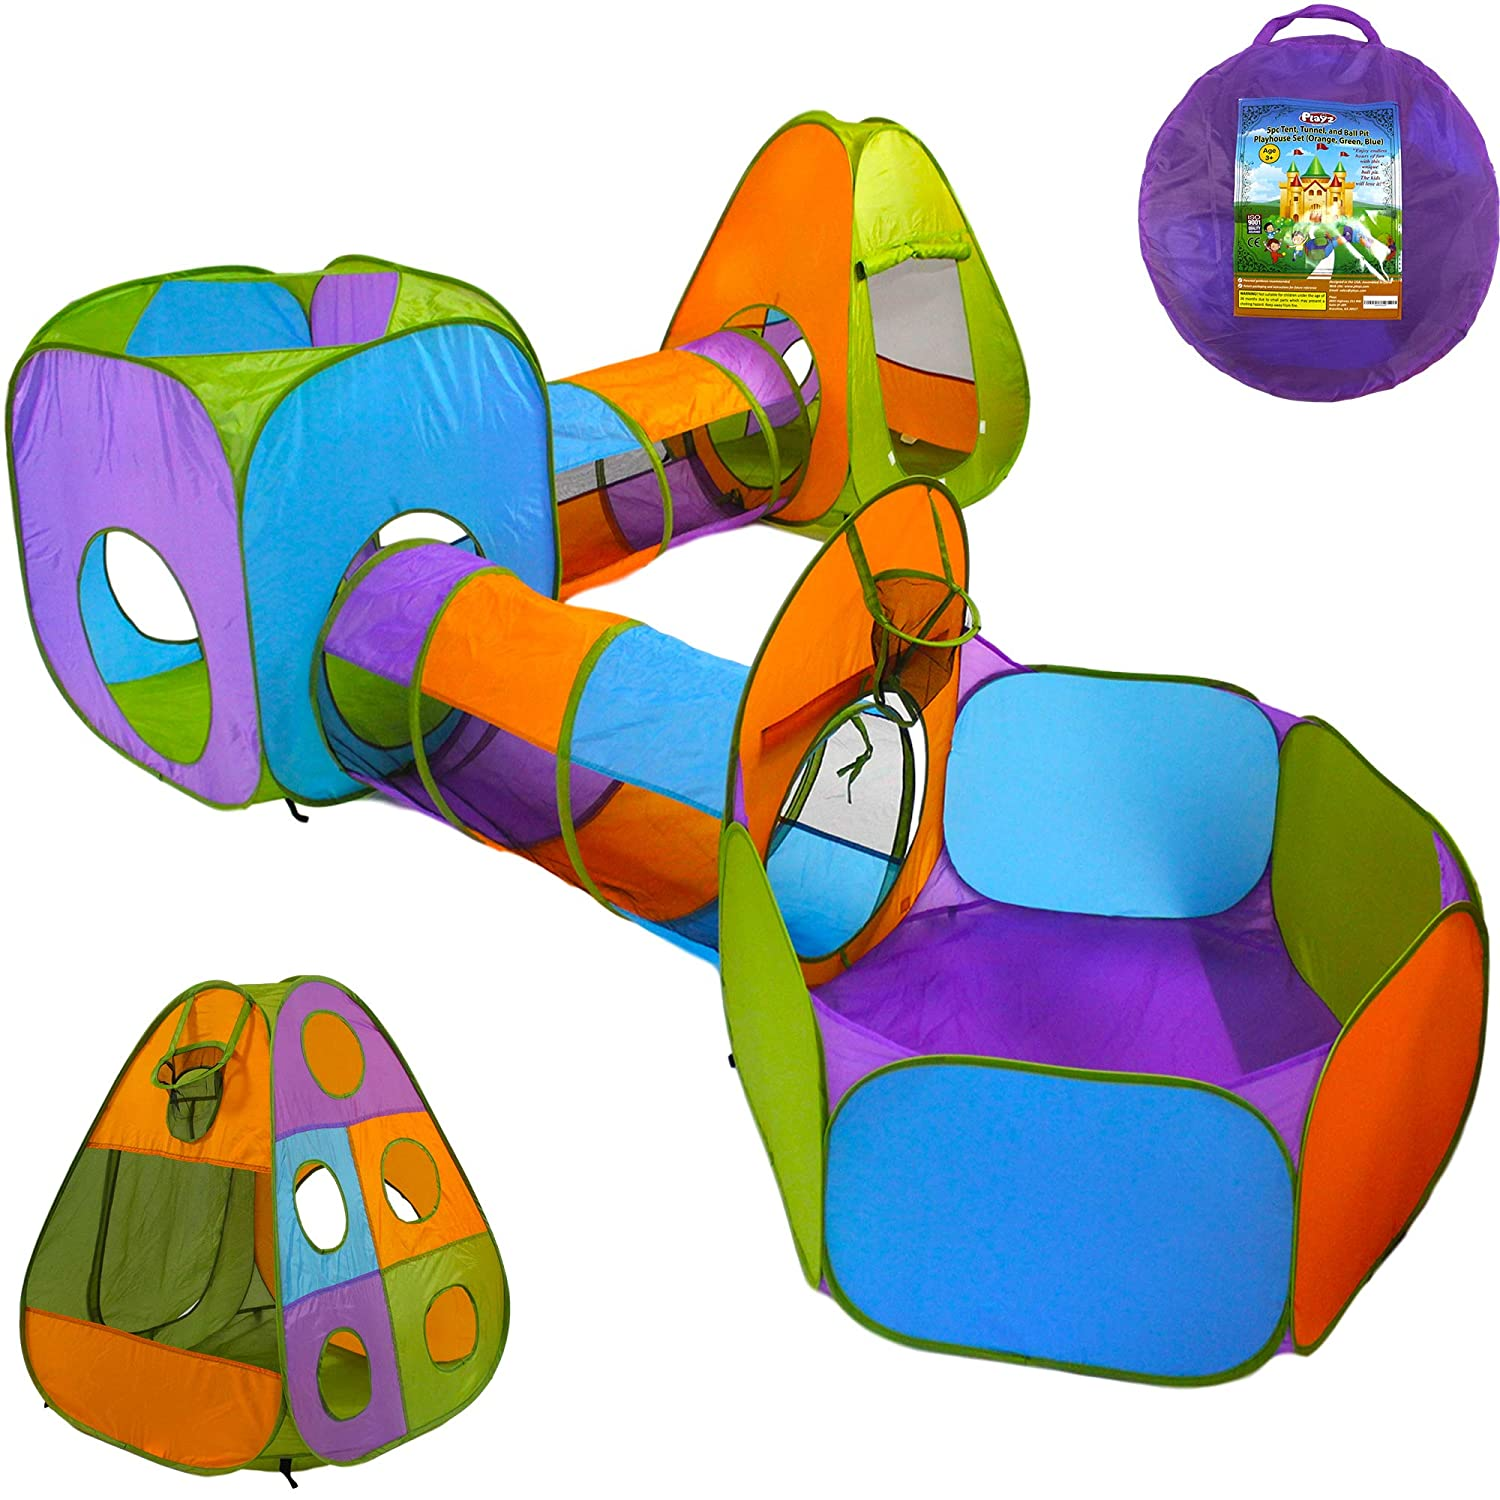 7 Best Crawling Tunnels for Toddlers Reviews of 2021 9